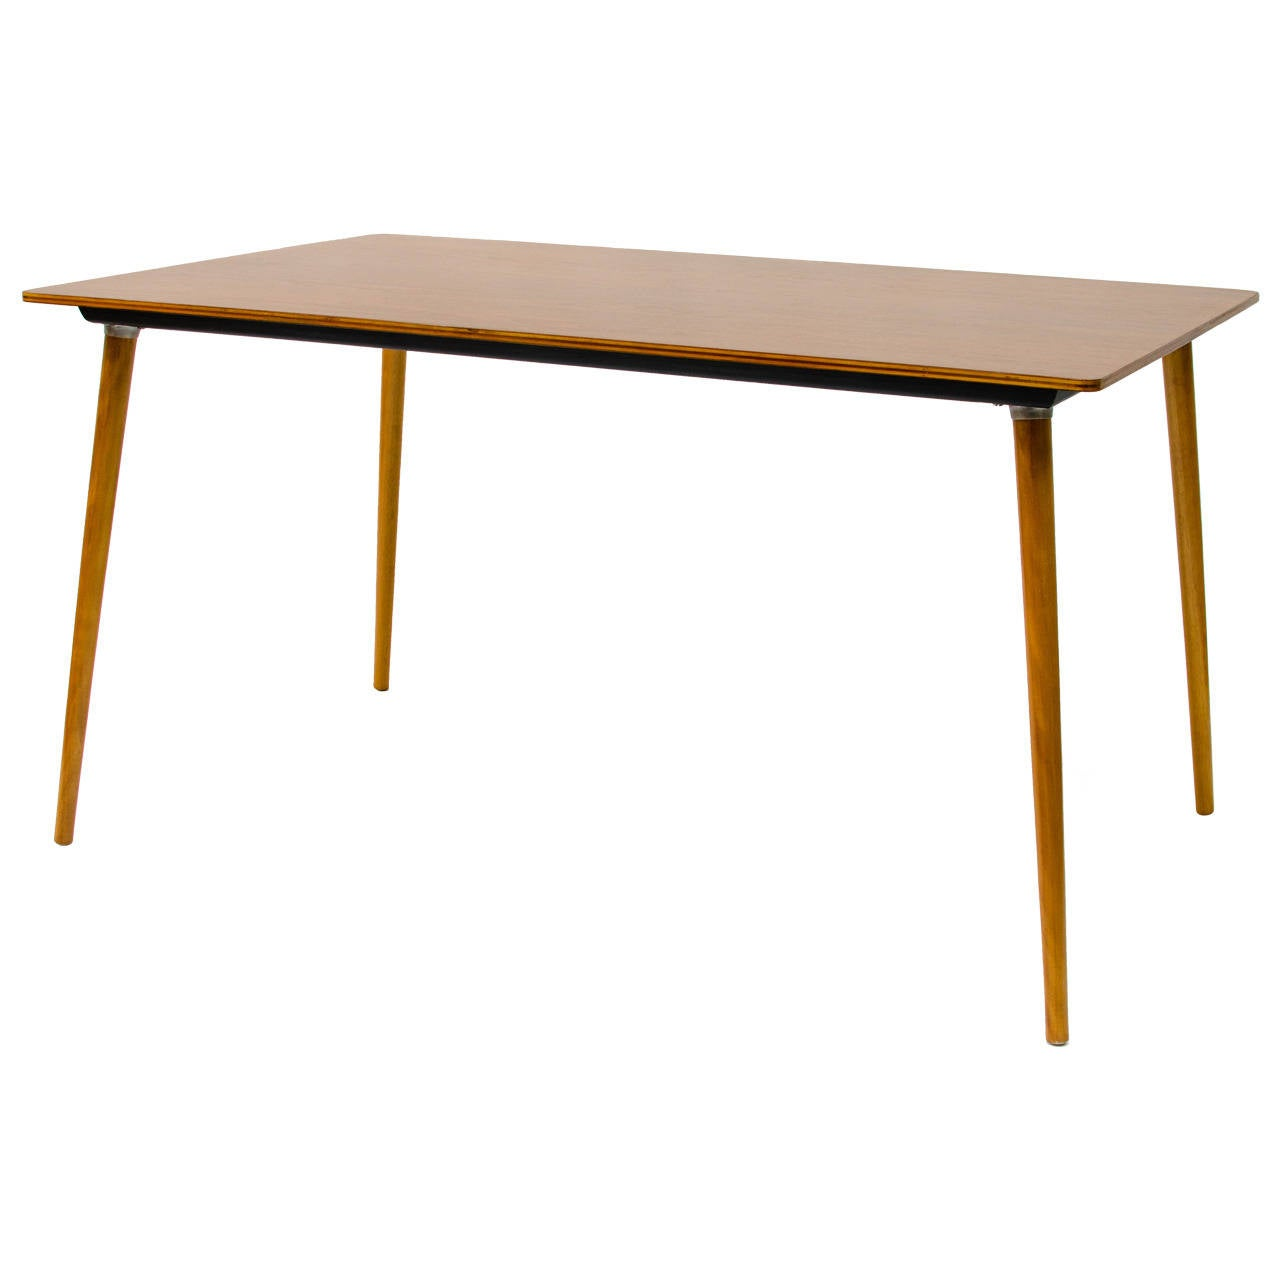 eames dtw 3 wood leg dining table at 1stdibs. Black Bedroom Furniture Sets. Home Design Ideas